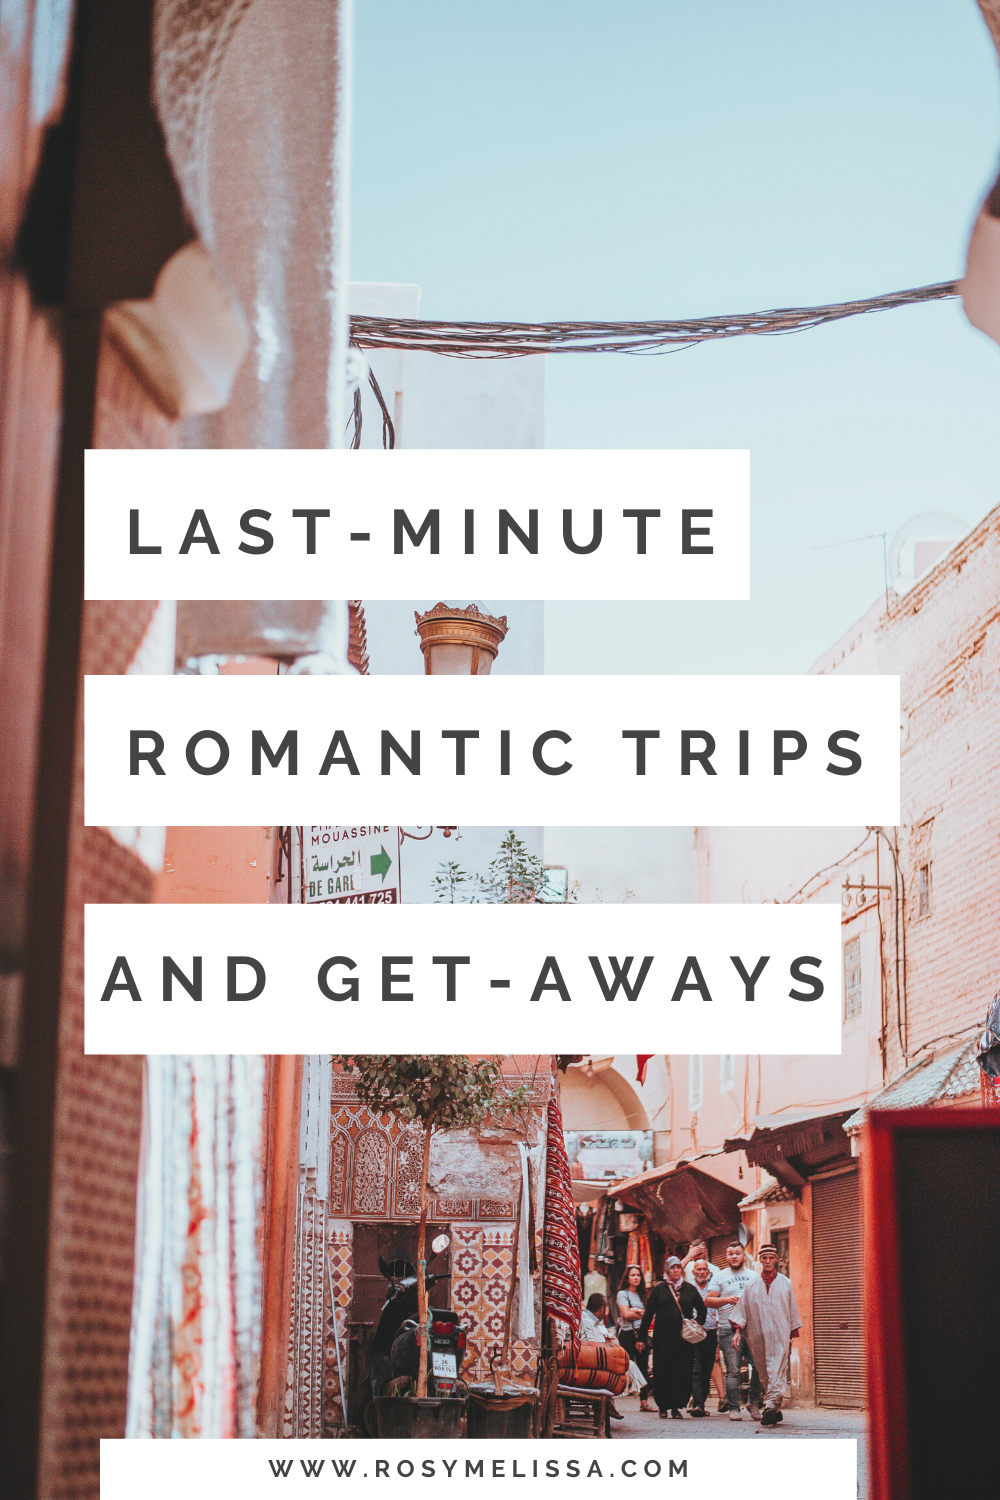 the best last minute romantic trips and romantic weekend get-aways for valentines day, greece, italy, portugal, morocco and the balkens